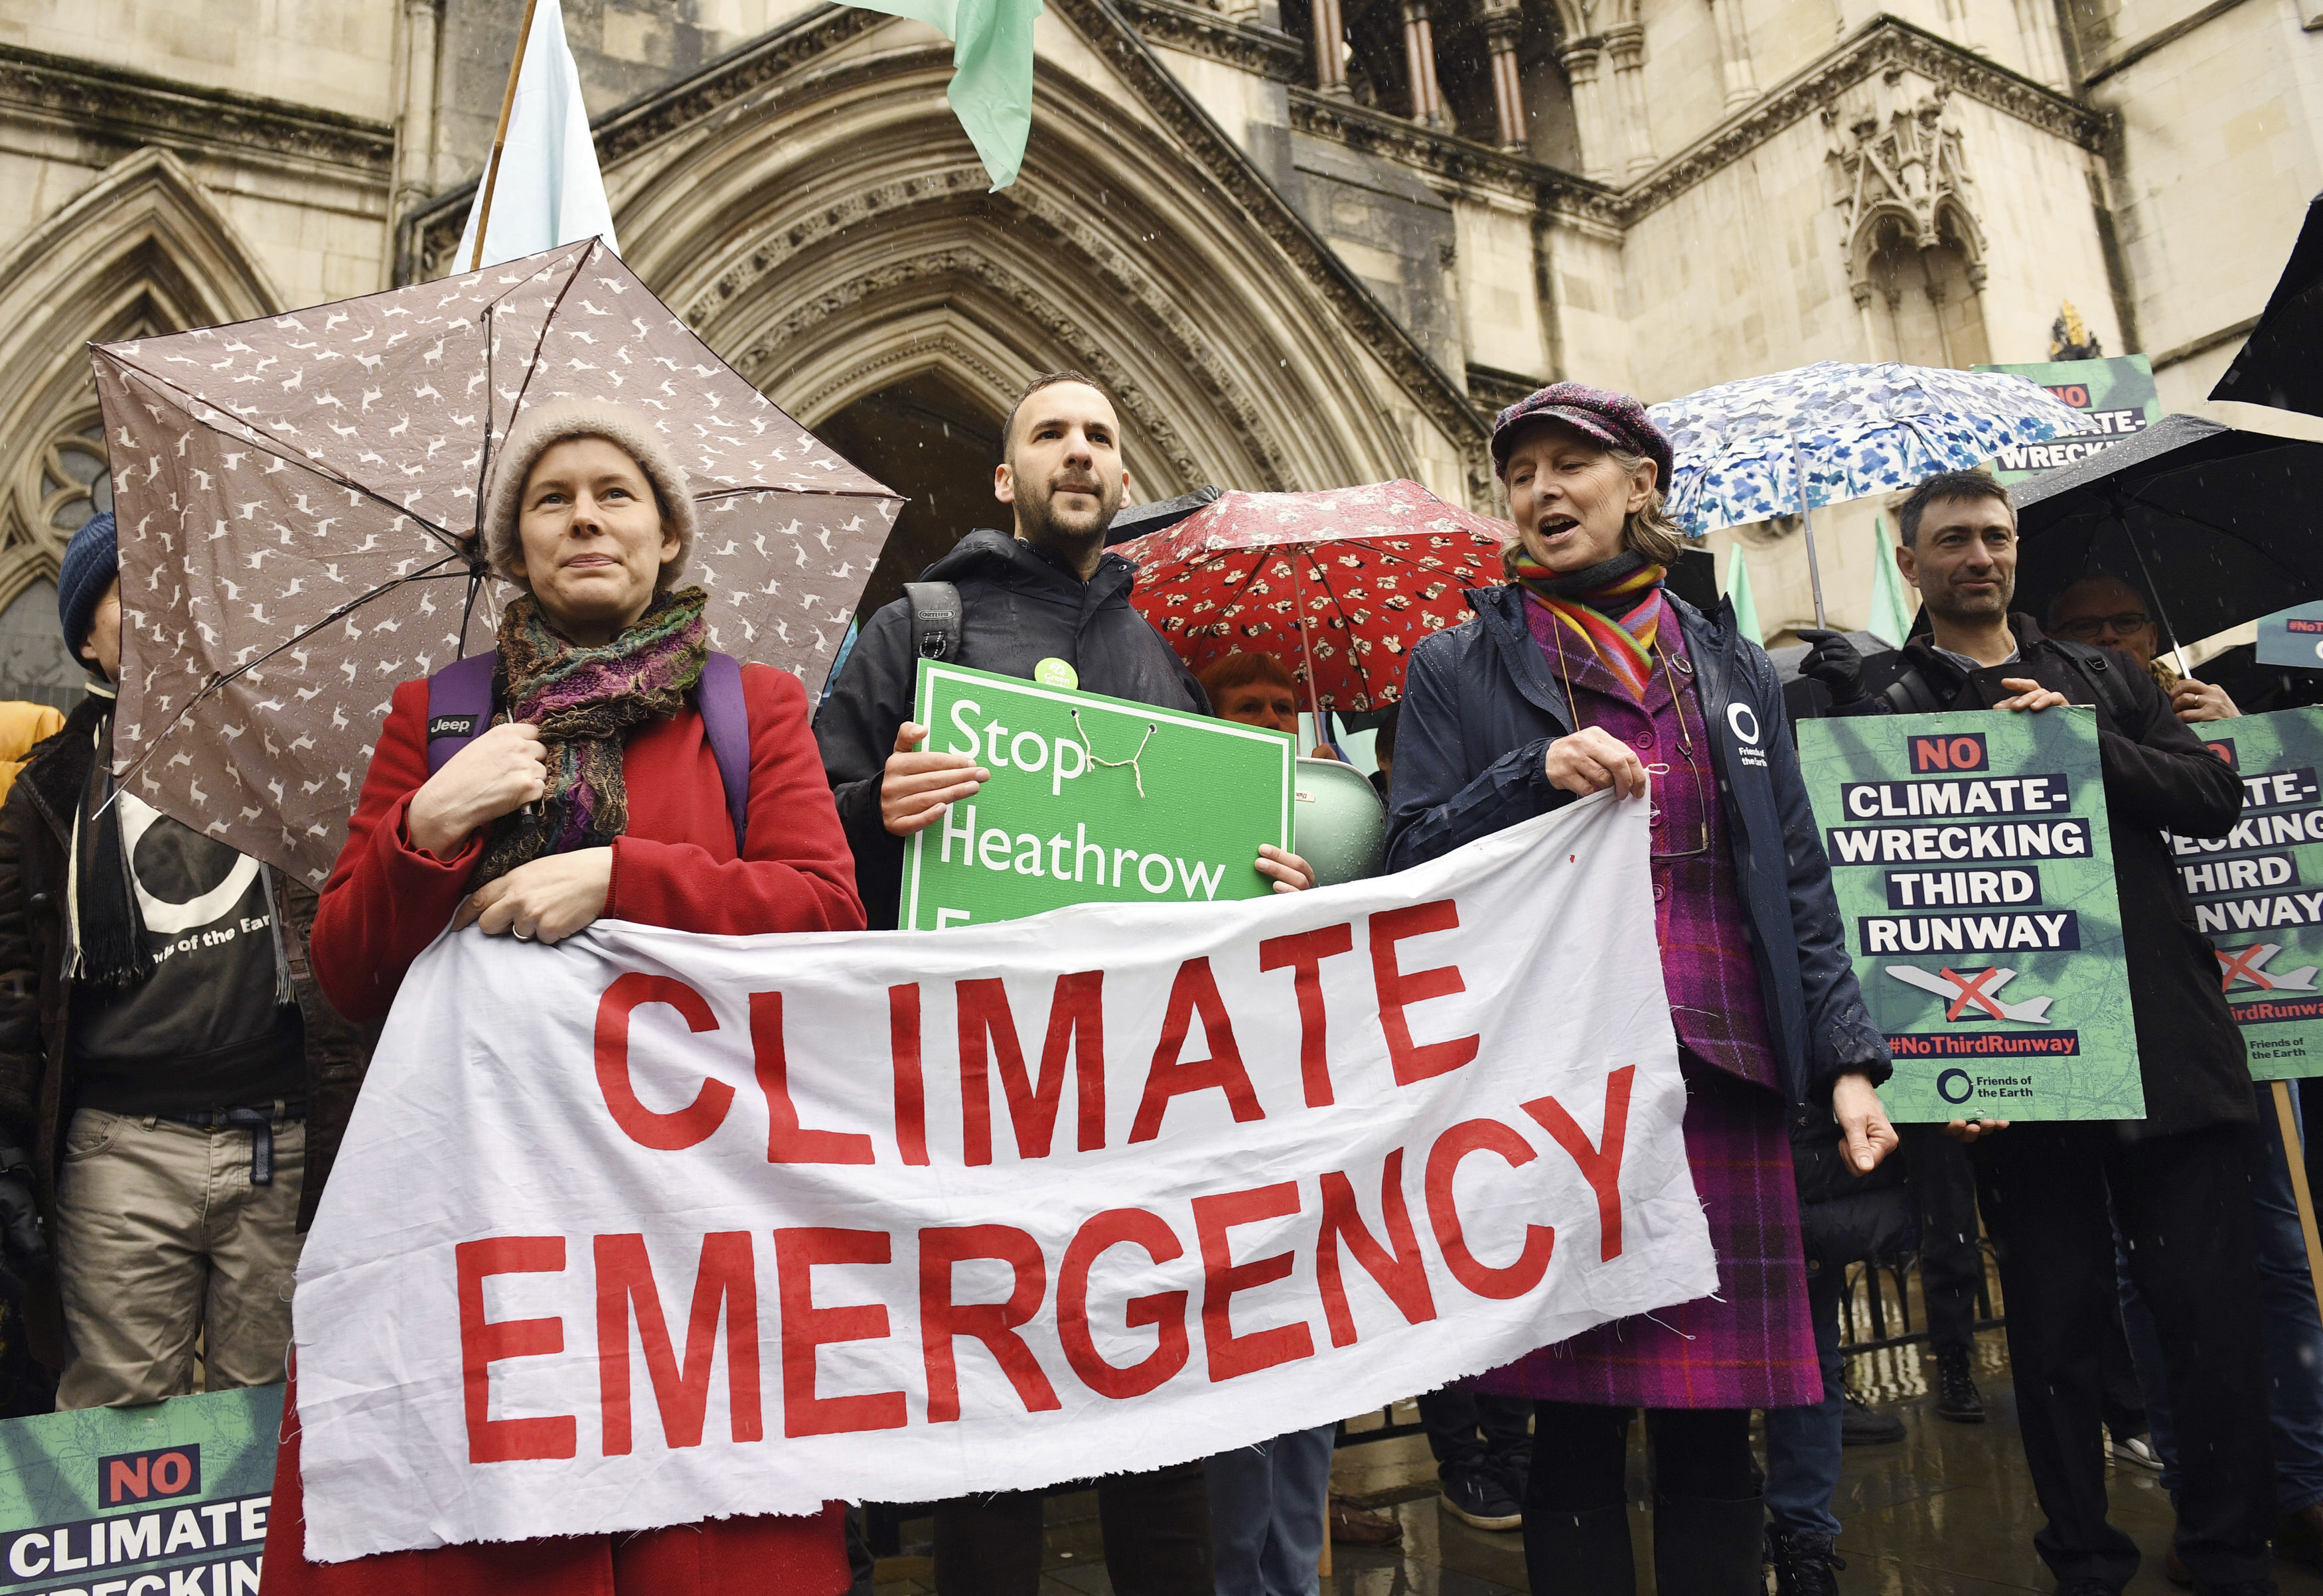 Campaigners win court challenge to block Heathrow expansion